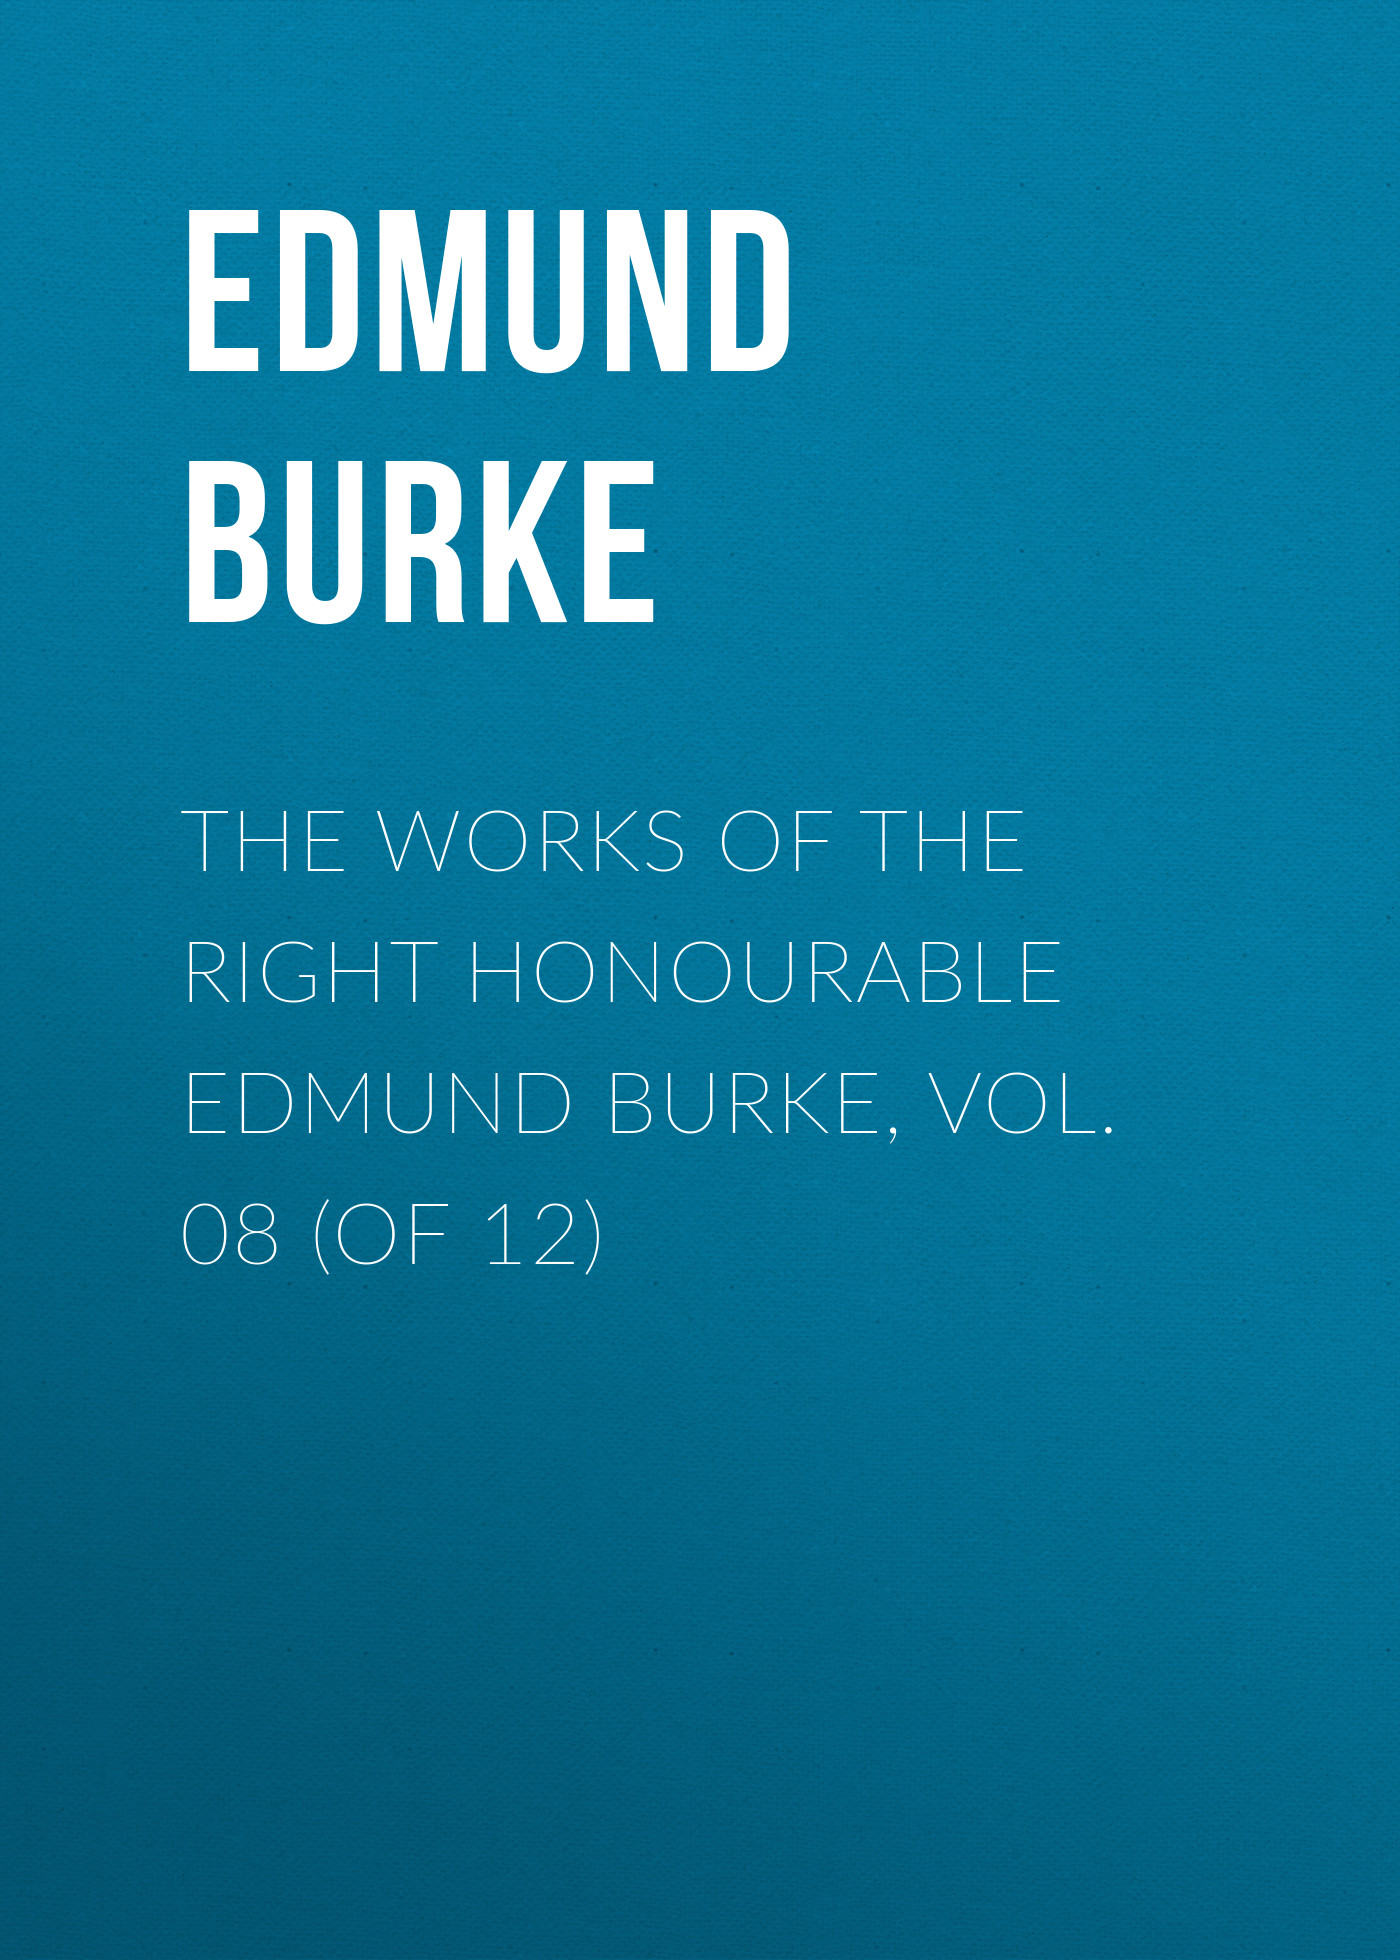 Edmund Burke The Works of the Right Honourable Edmund Burke, Vol. 08 (of 12) edmund burke the works of the right honourable edmund burke vol 12 of 12